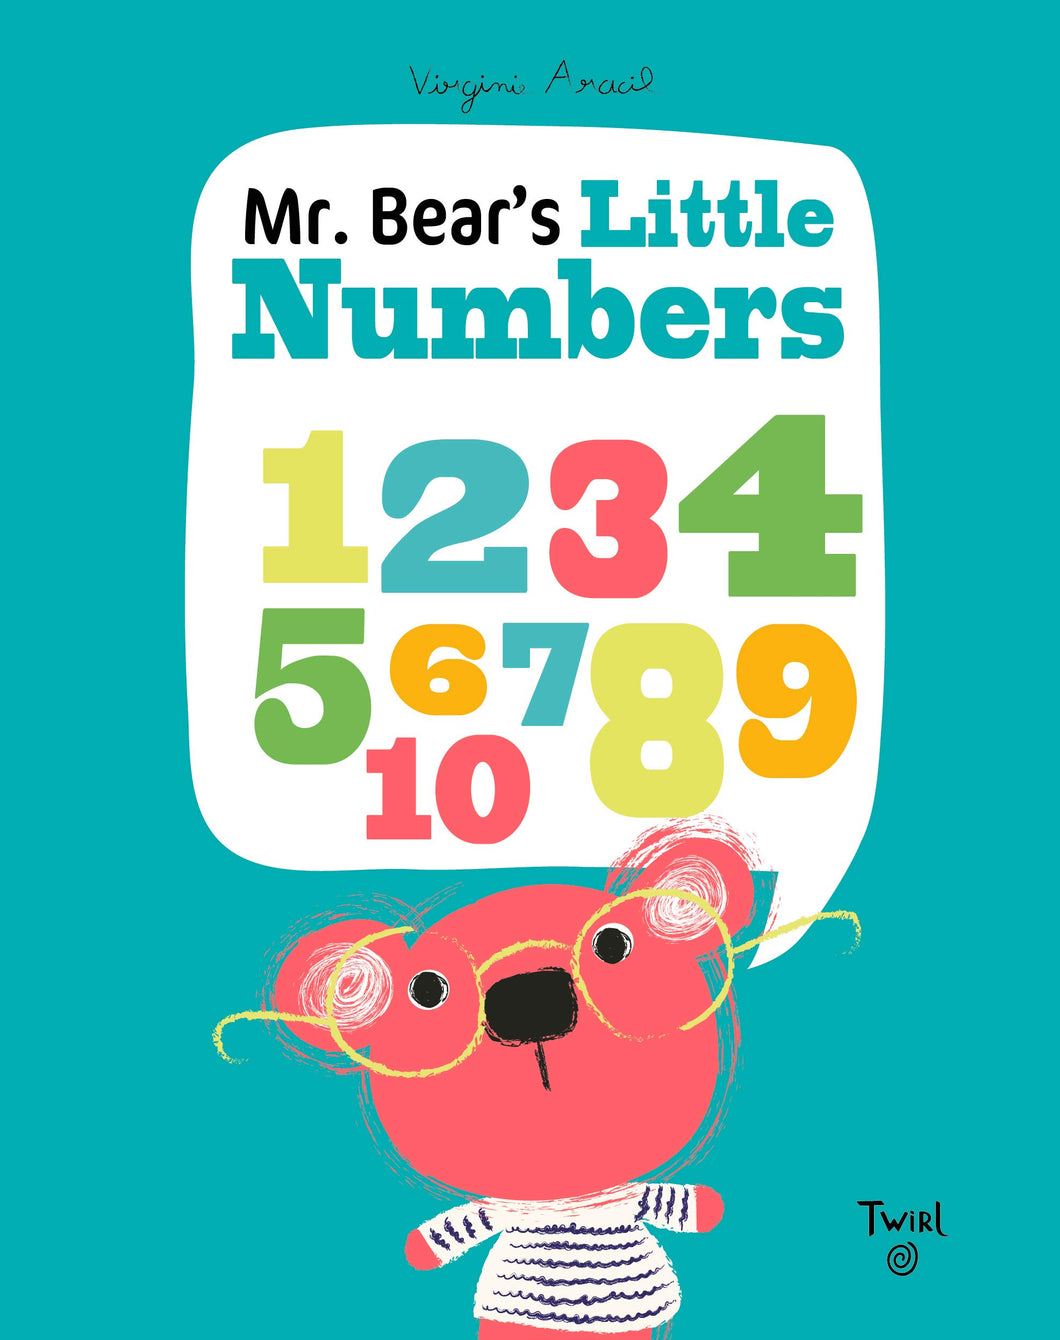 Mr. Bear's Little Numbers